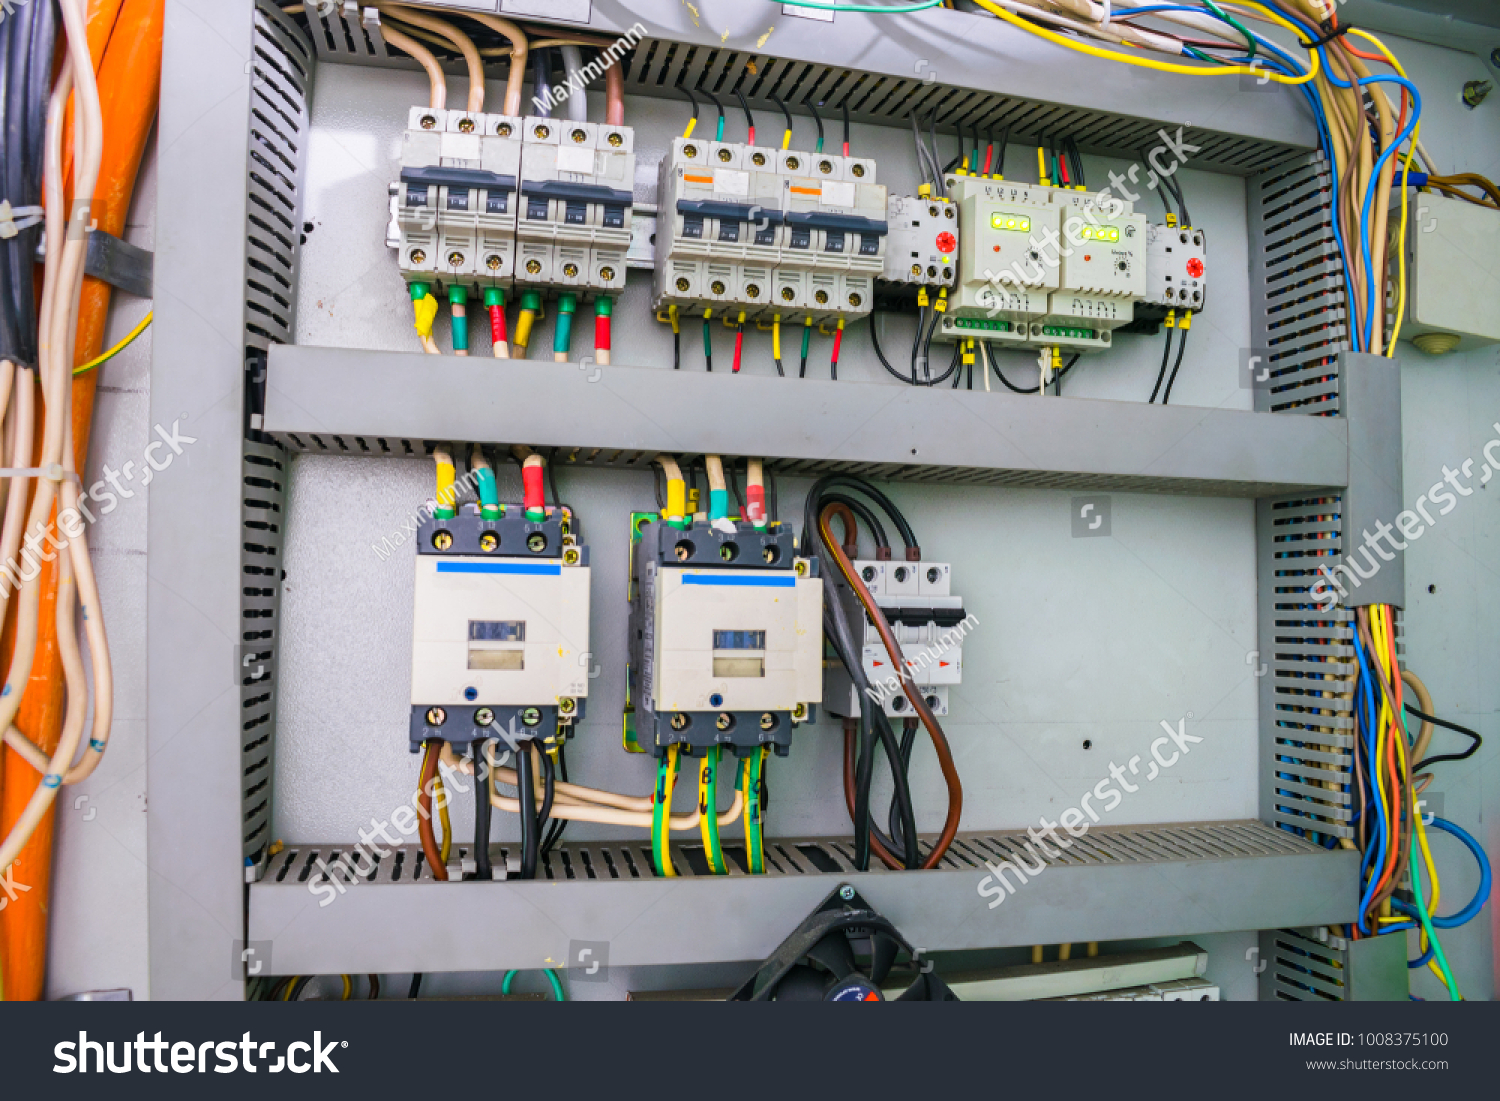 hight resolution of fuse box with an electric relay and automatic machines electric board and high voltage switches